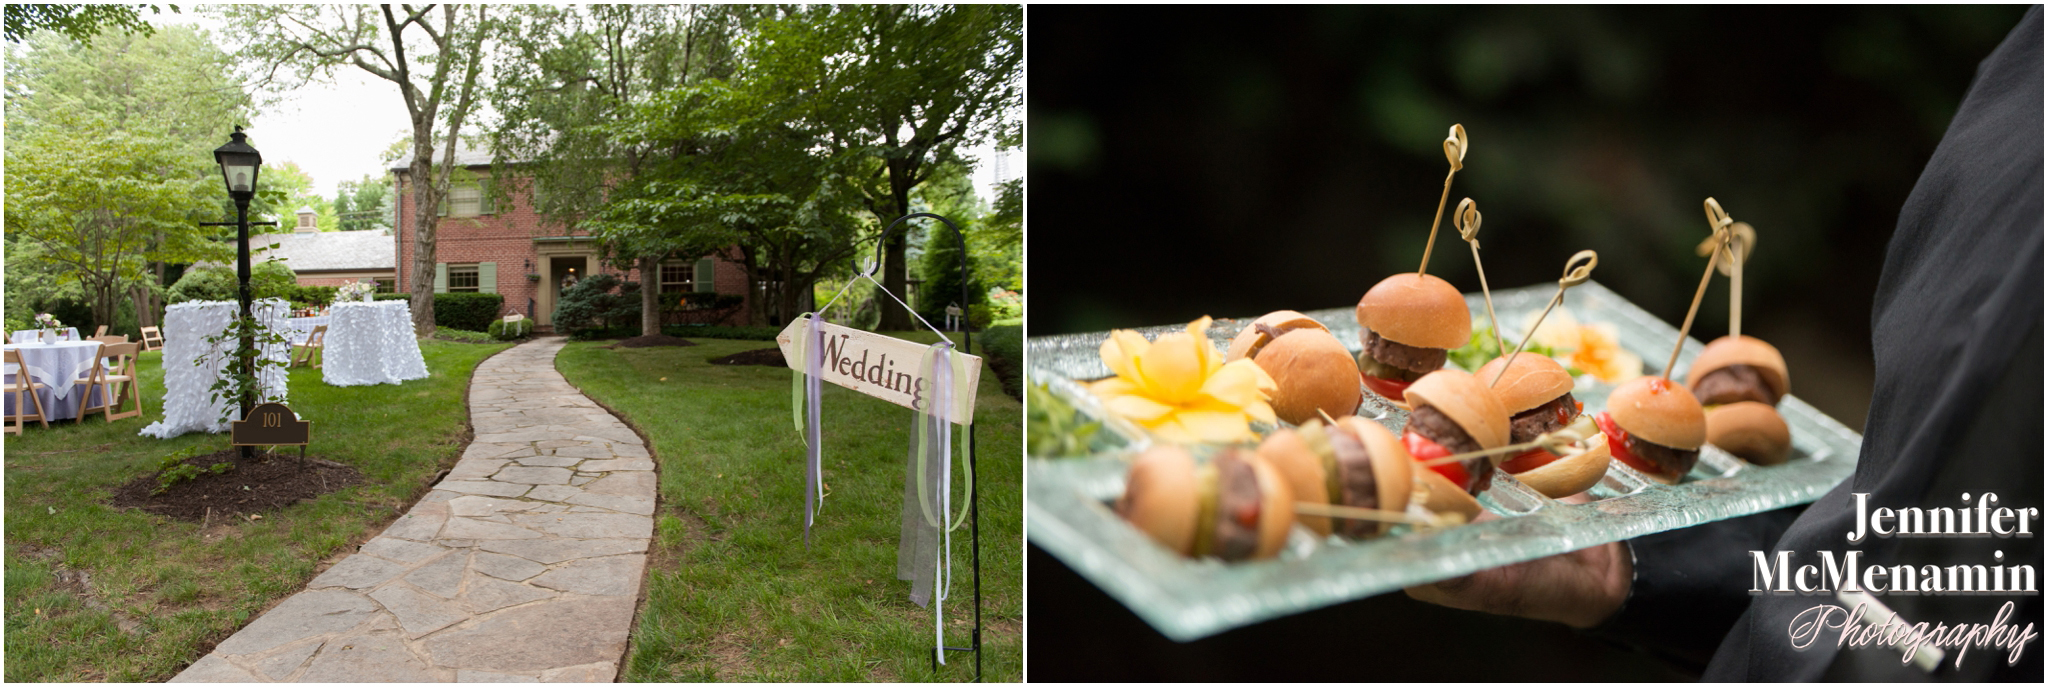 048-CoughlinPomper_02358-0482_JenniferMcMenaminPhotography_Private-Residence-Roland-Park_Baltimore-Wedding-Photography